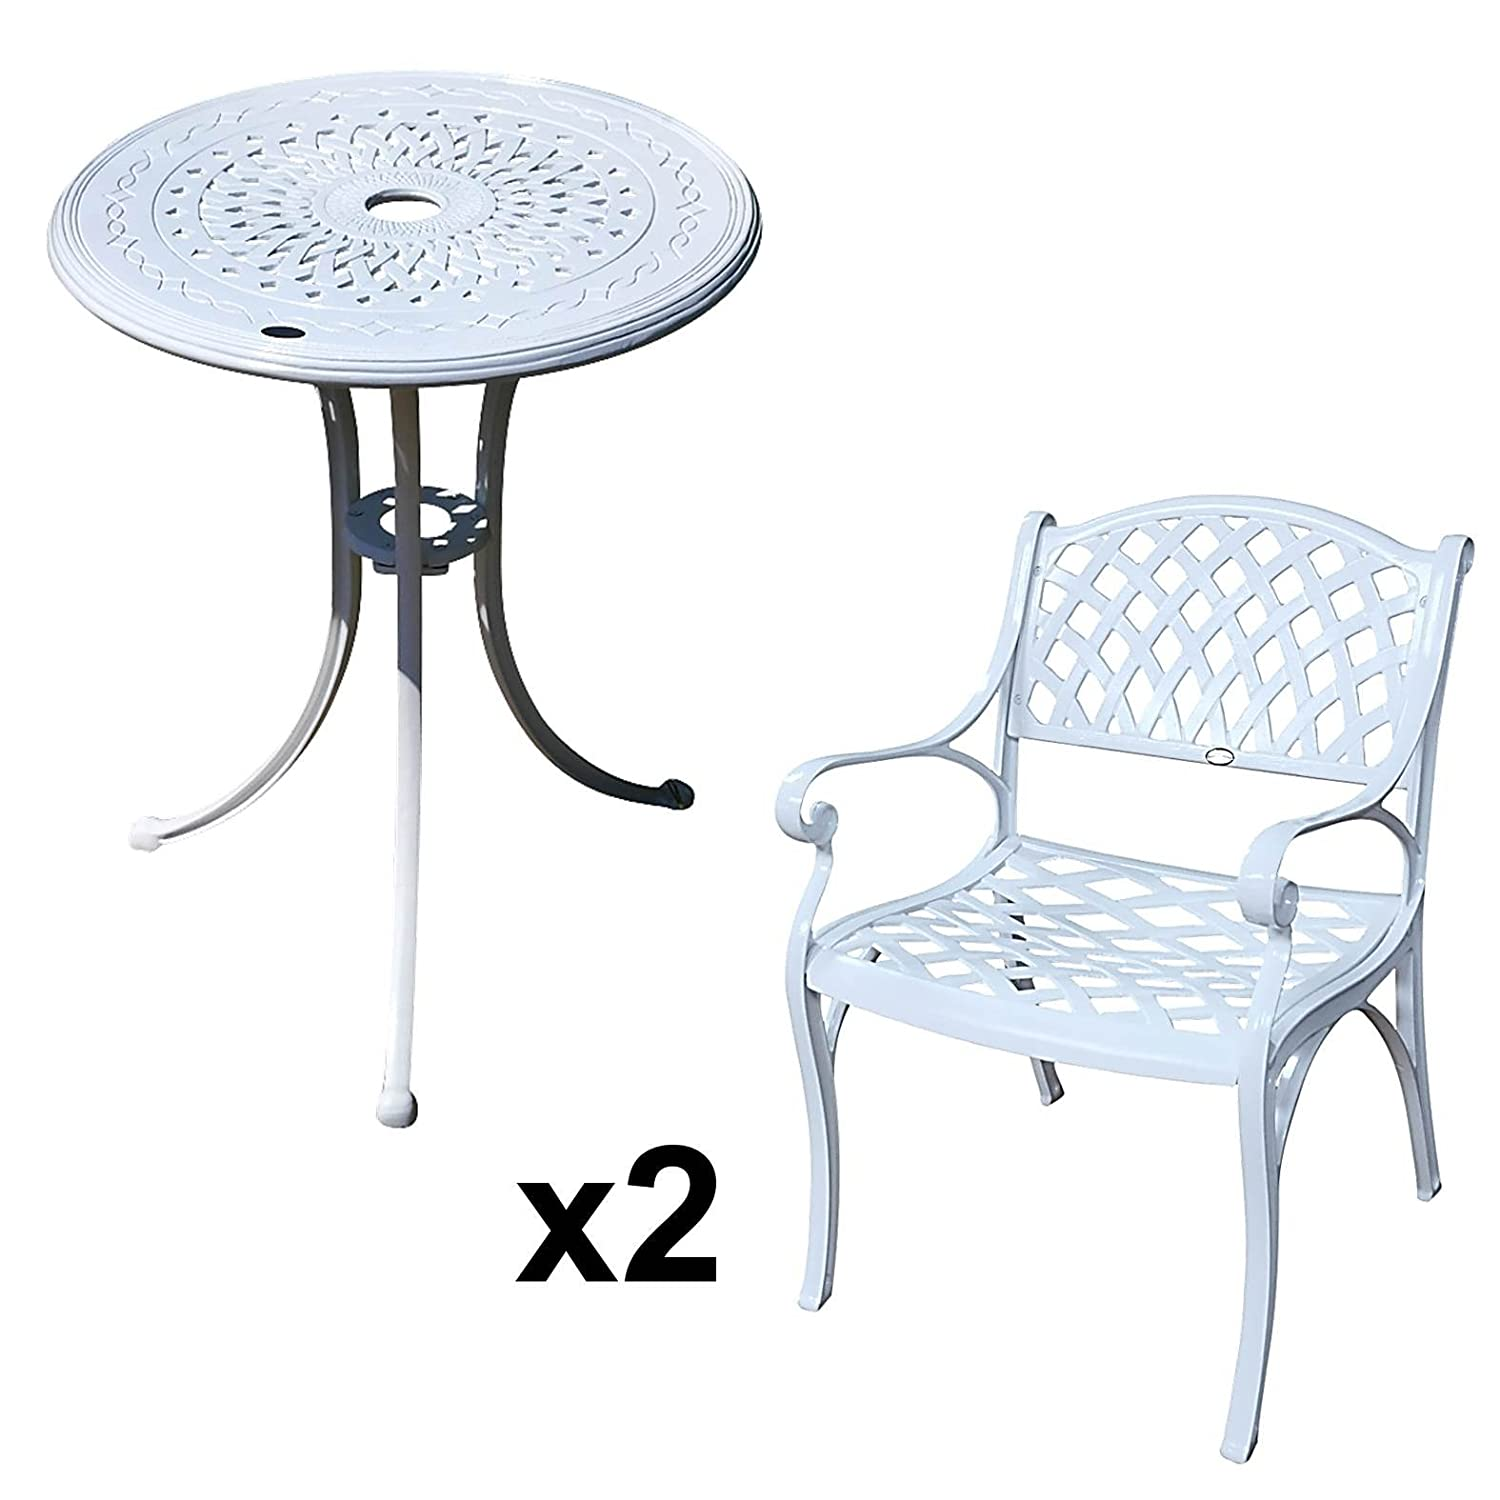 lazy susan ella 60 cm bistrotisch mit 2 st hlen rundes gartenm bel set aus metall wei. Black Bedroom Furniture Sets. Home Design Ideas